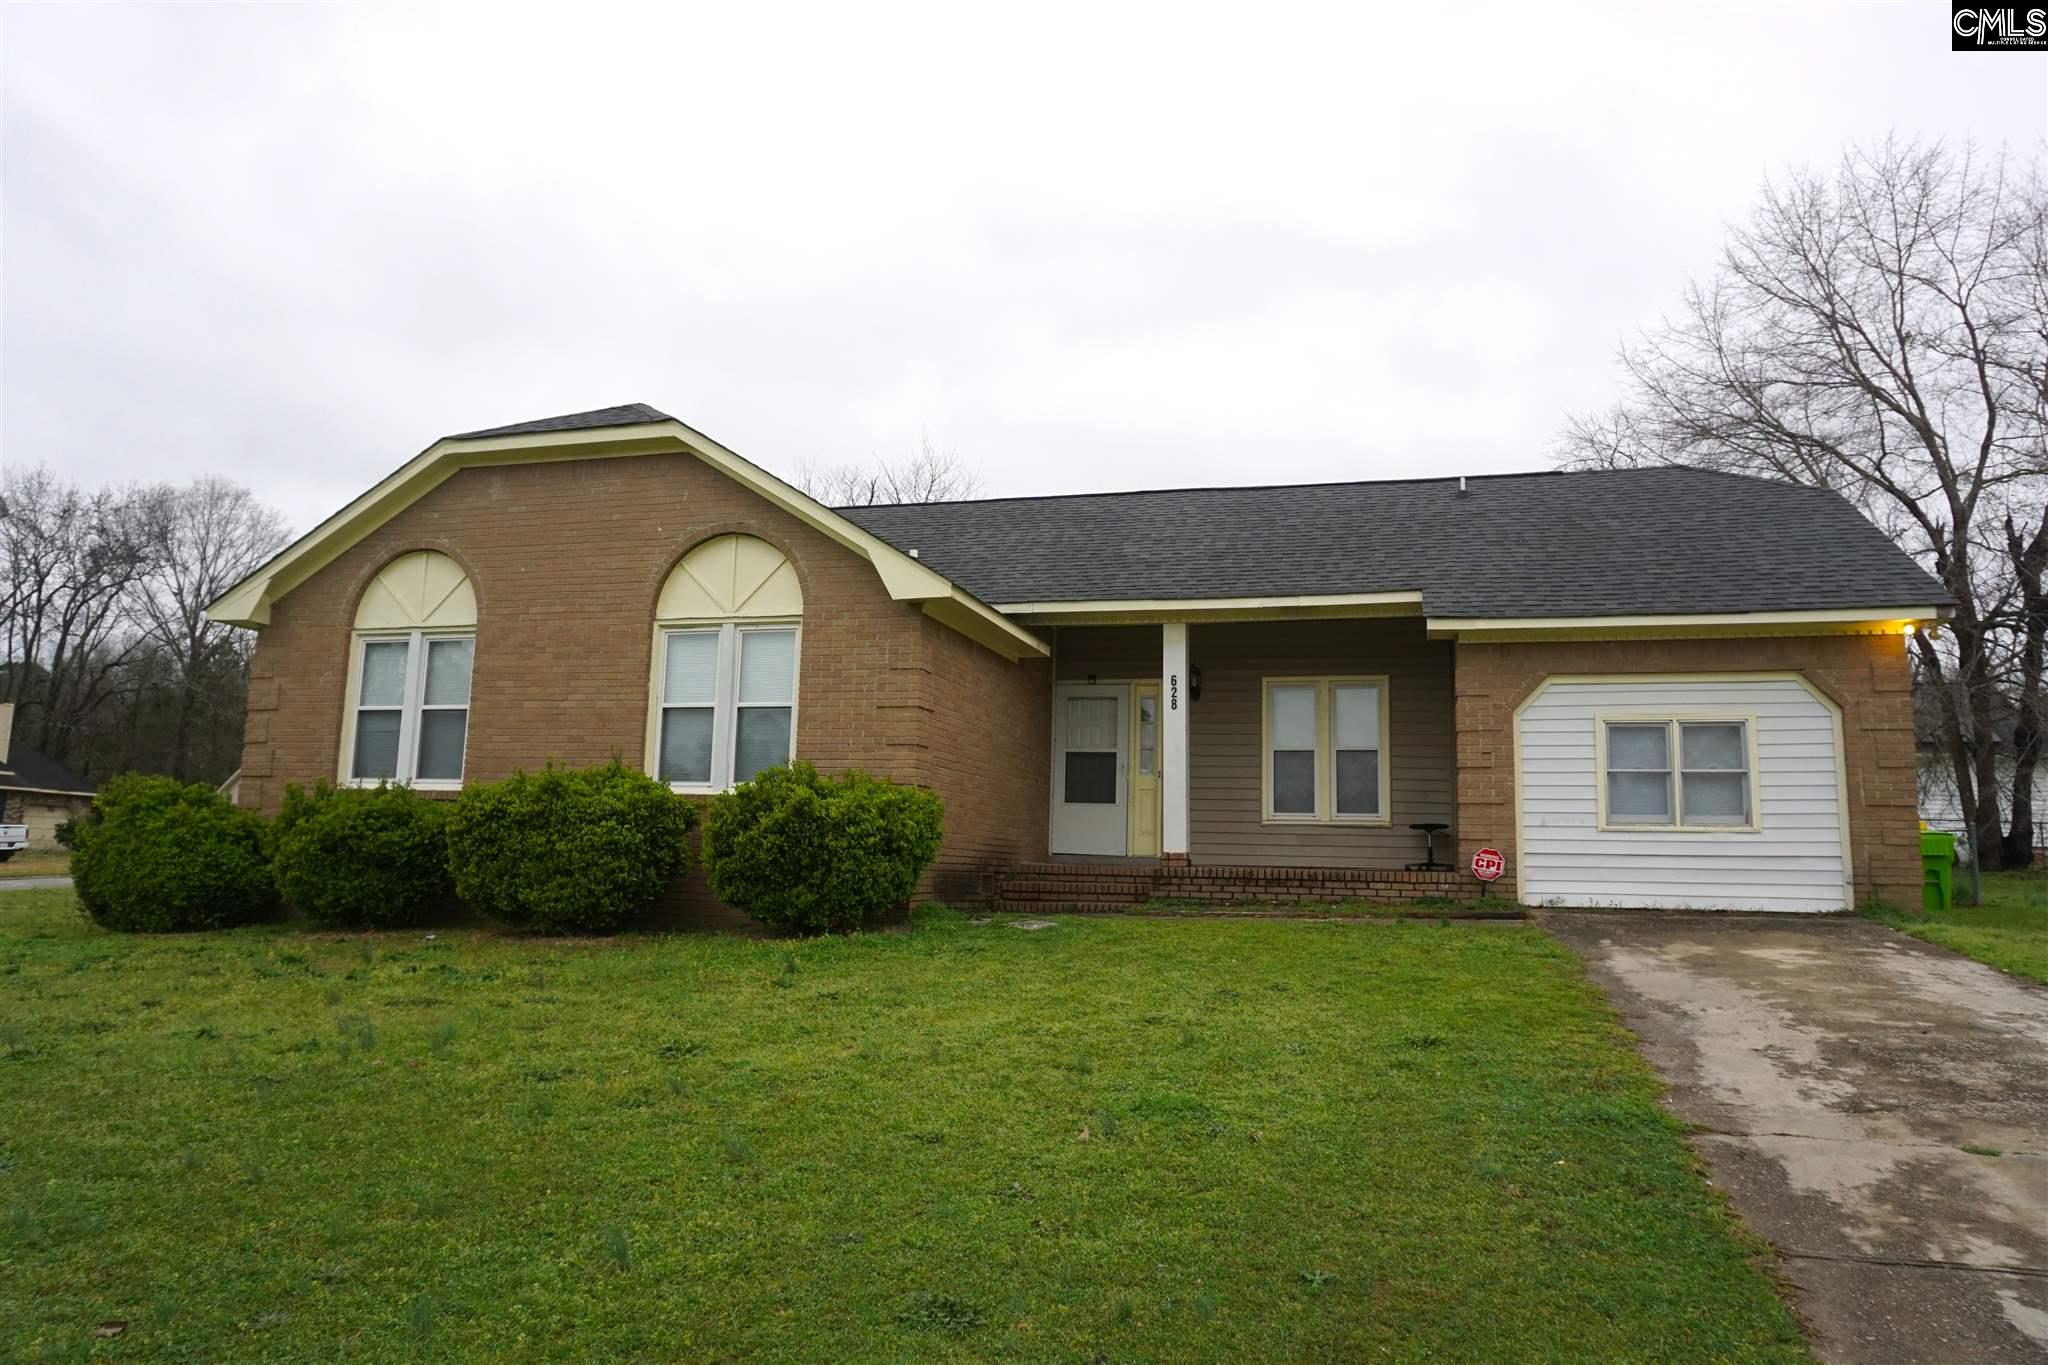 628 Chilhowie Columbia, SC 29209-5525